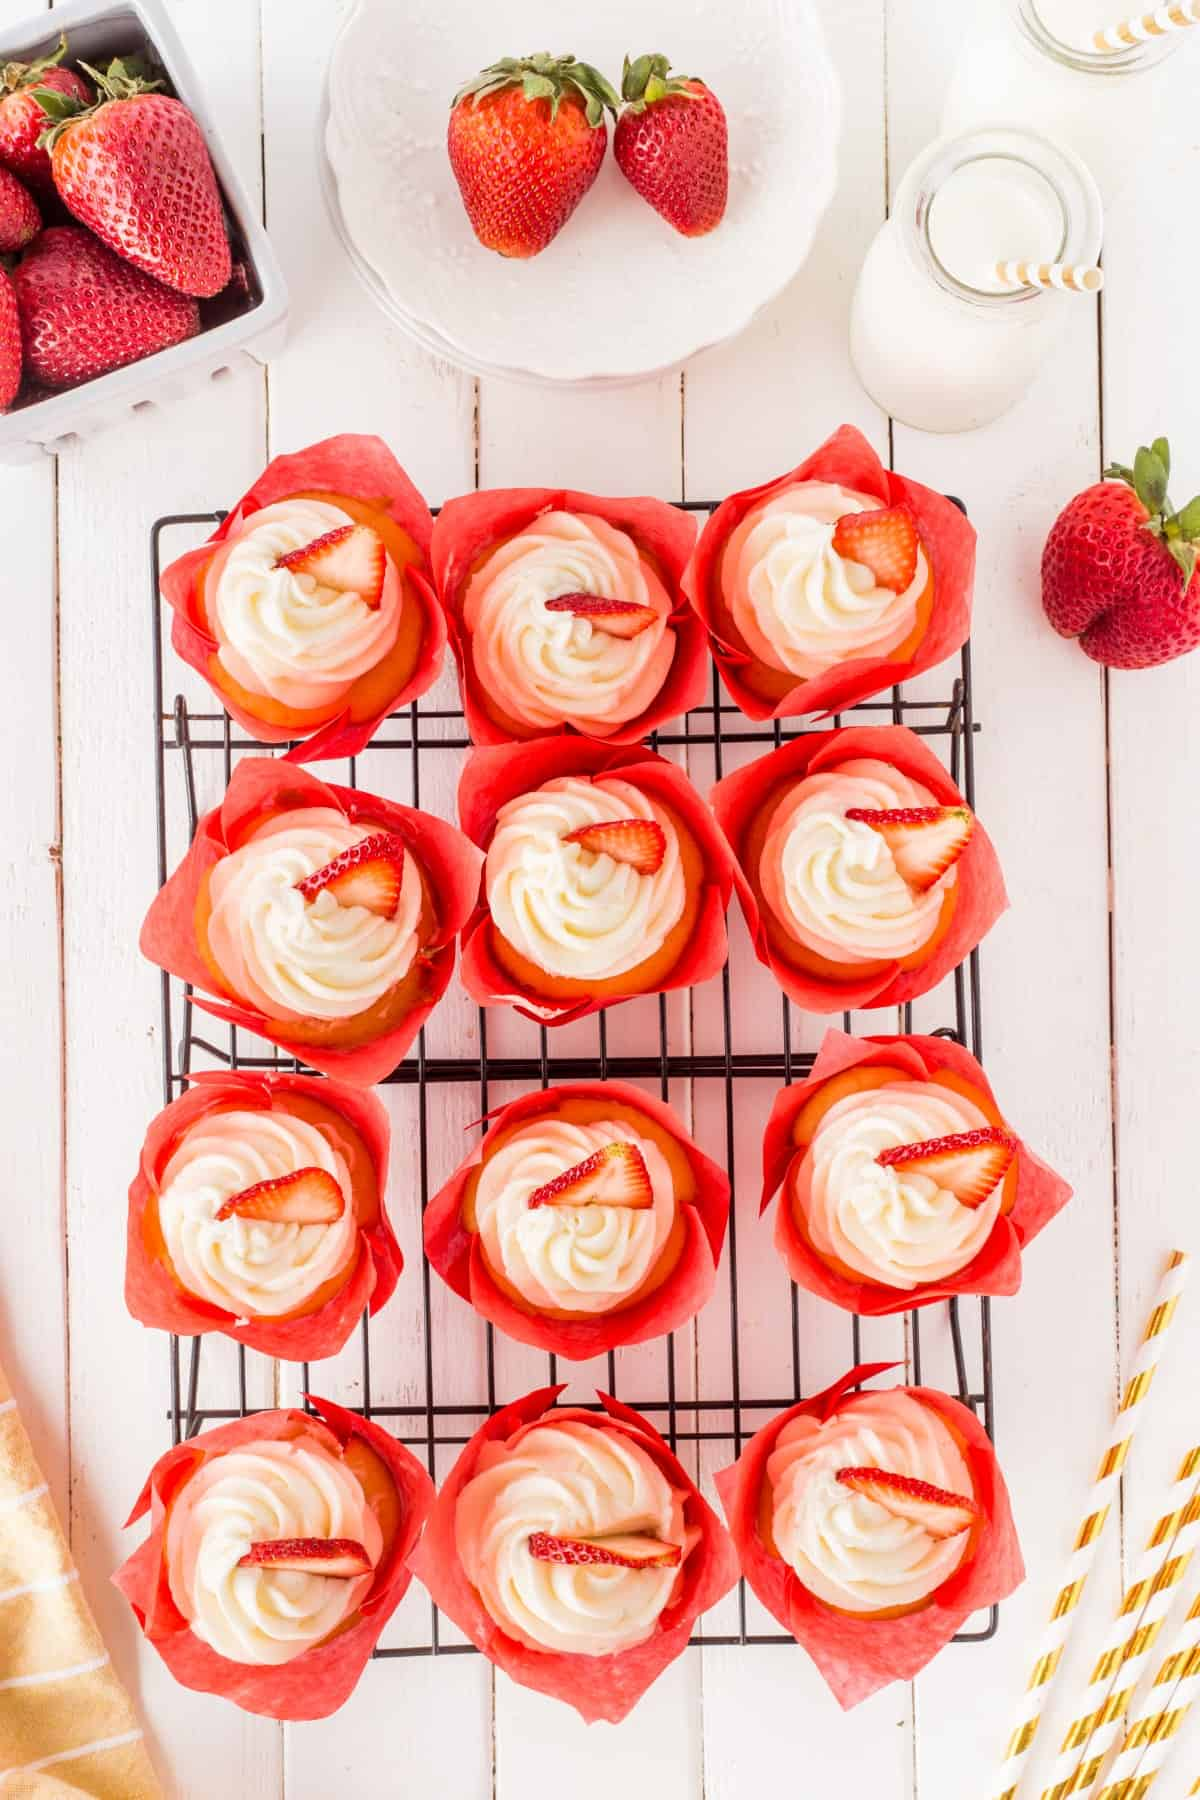 Overhead shot of strawberry cupcakes on a wire rack.